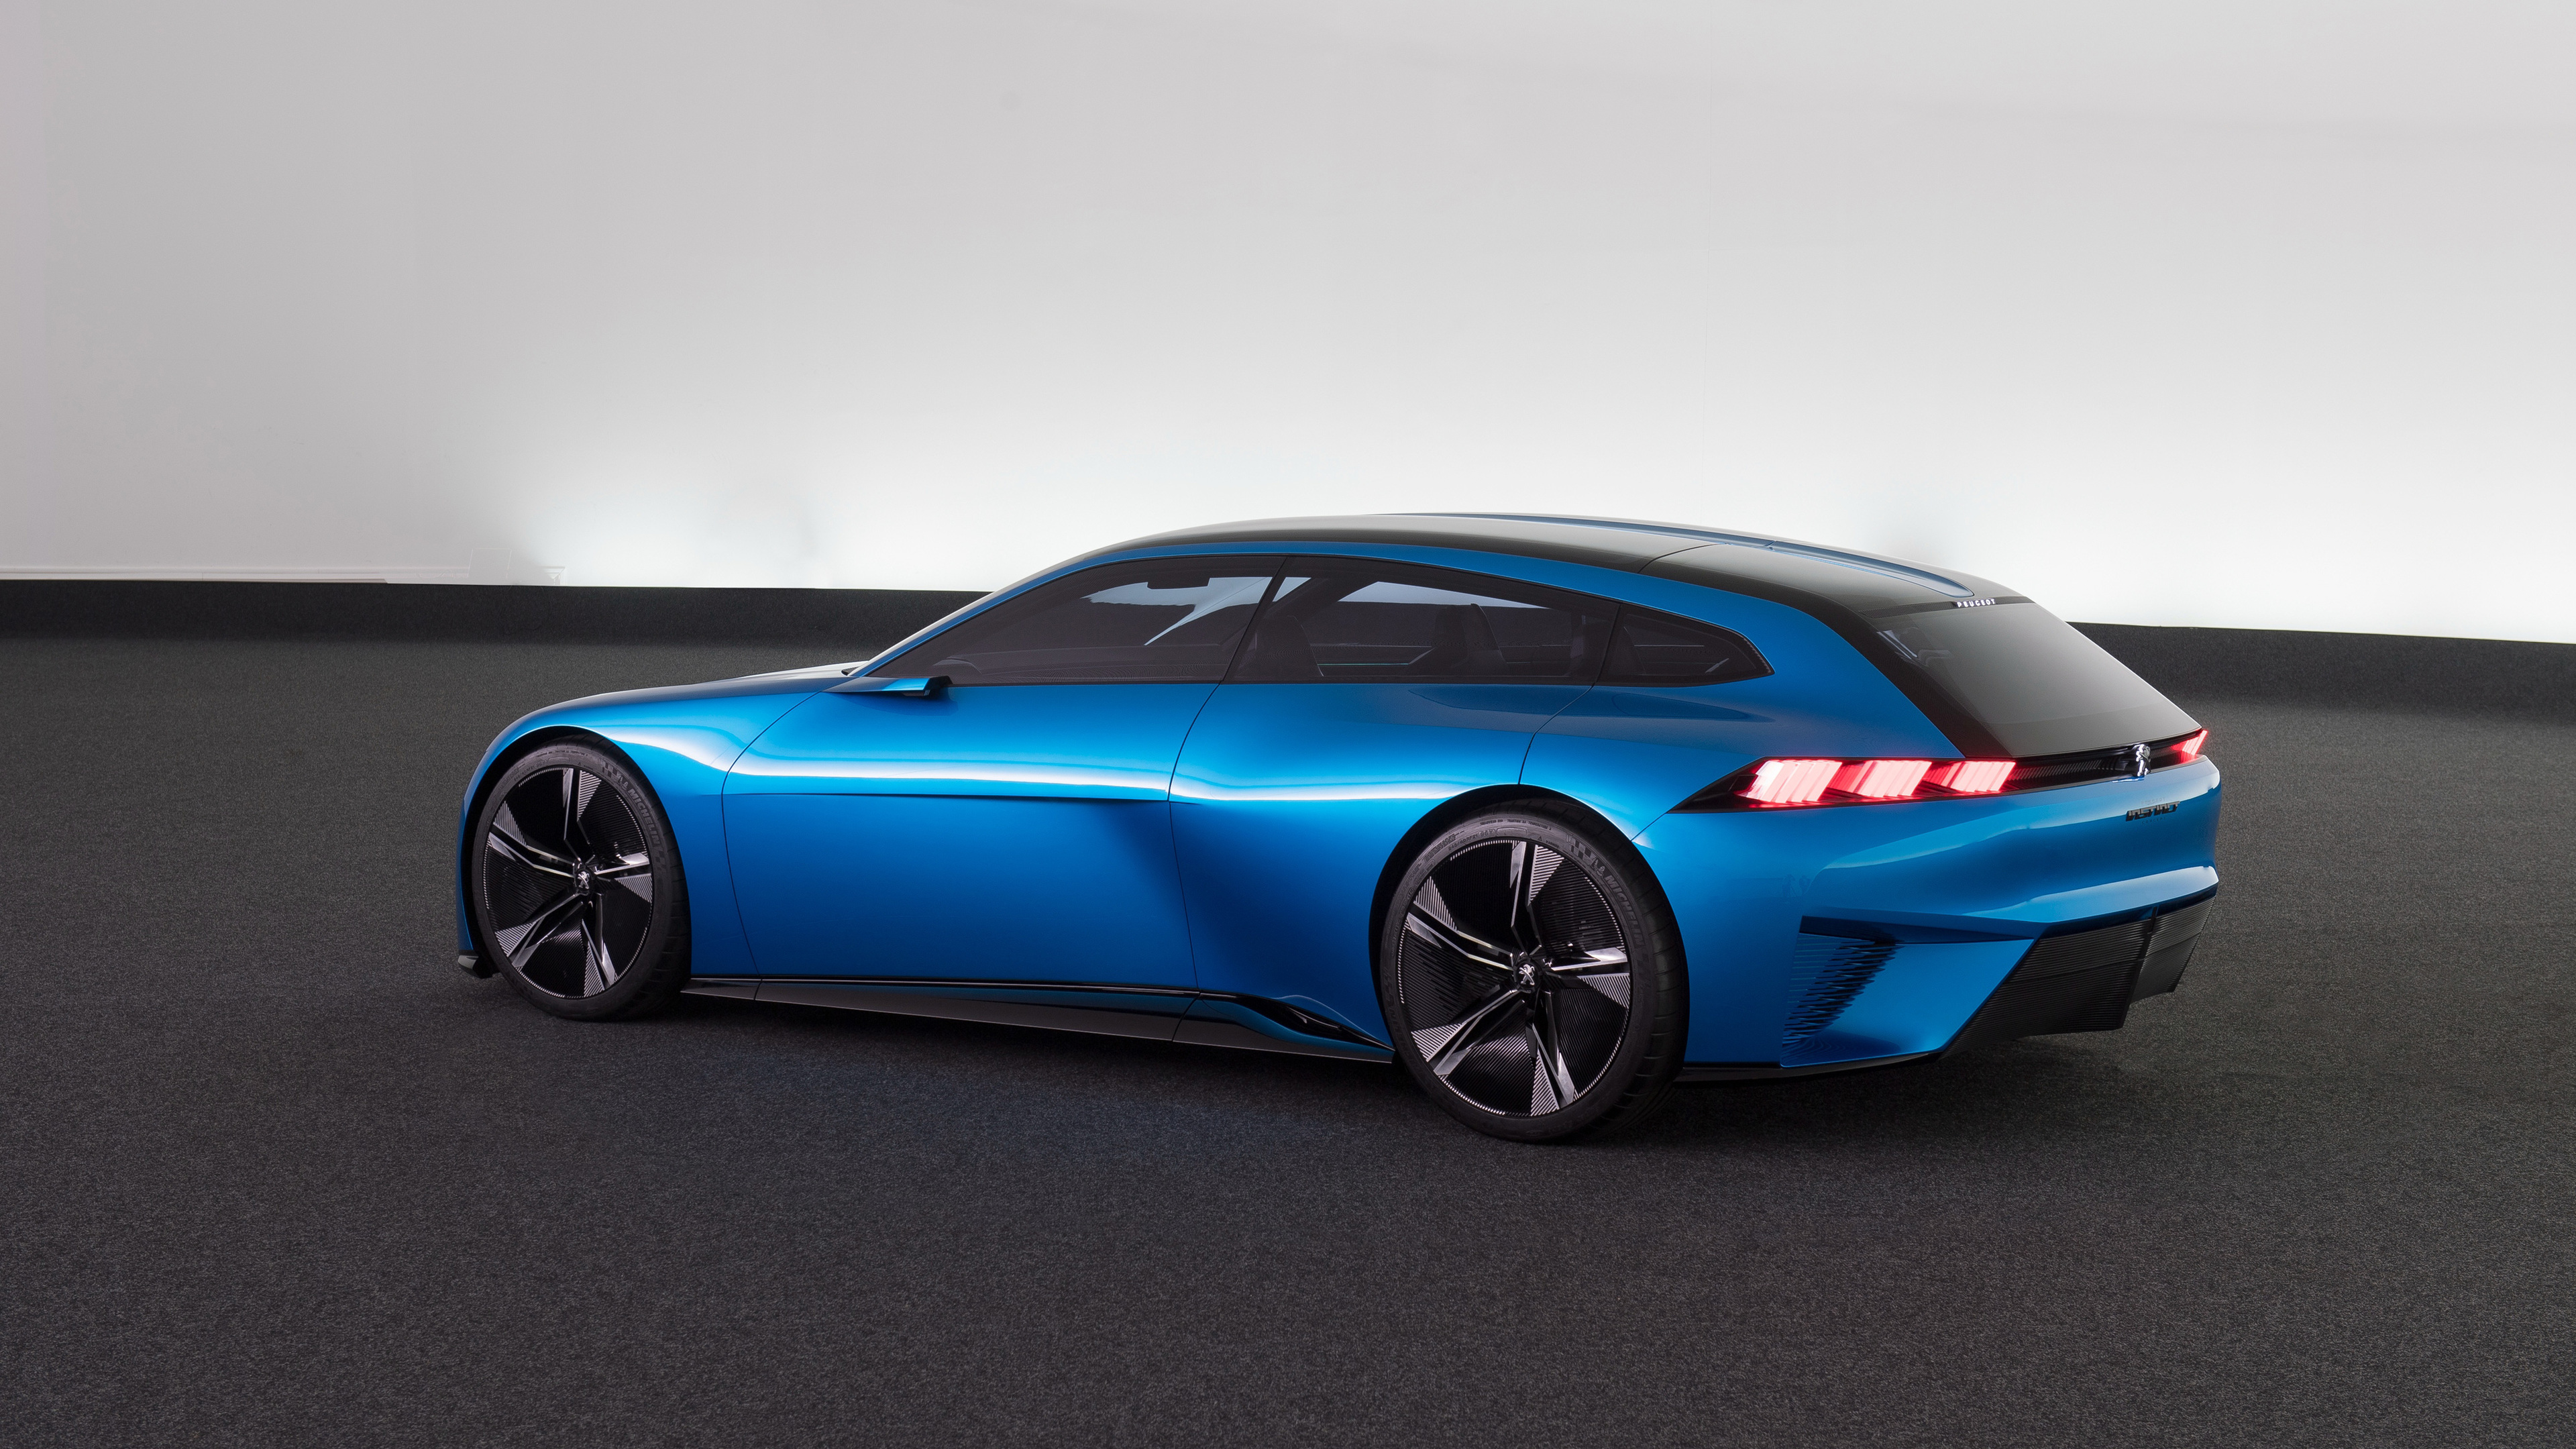 peugeot instinct 1539108863 - Peugeot Instinct - peugeot wallpapers, peugeot instinct wallpapers, hd-wallpapers, concept cars wallpapers, cars wallpapers, 4k-wallpapers, 2017 cars wallpapers